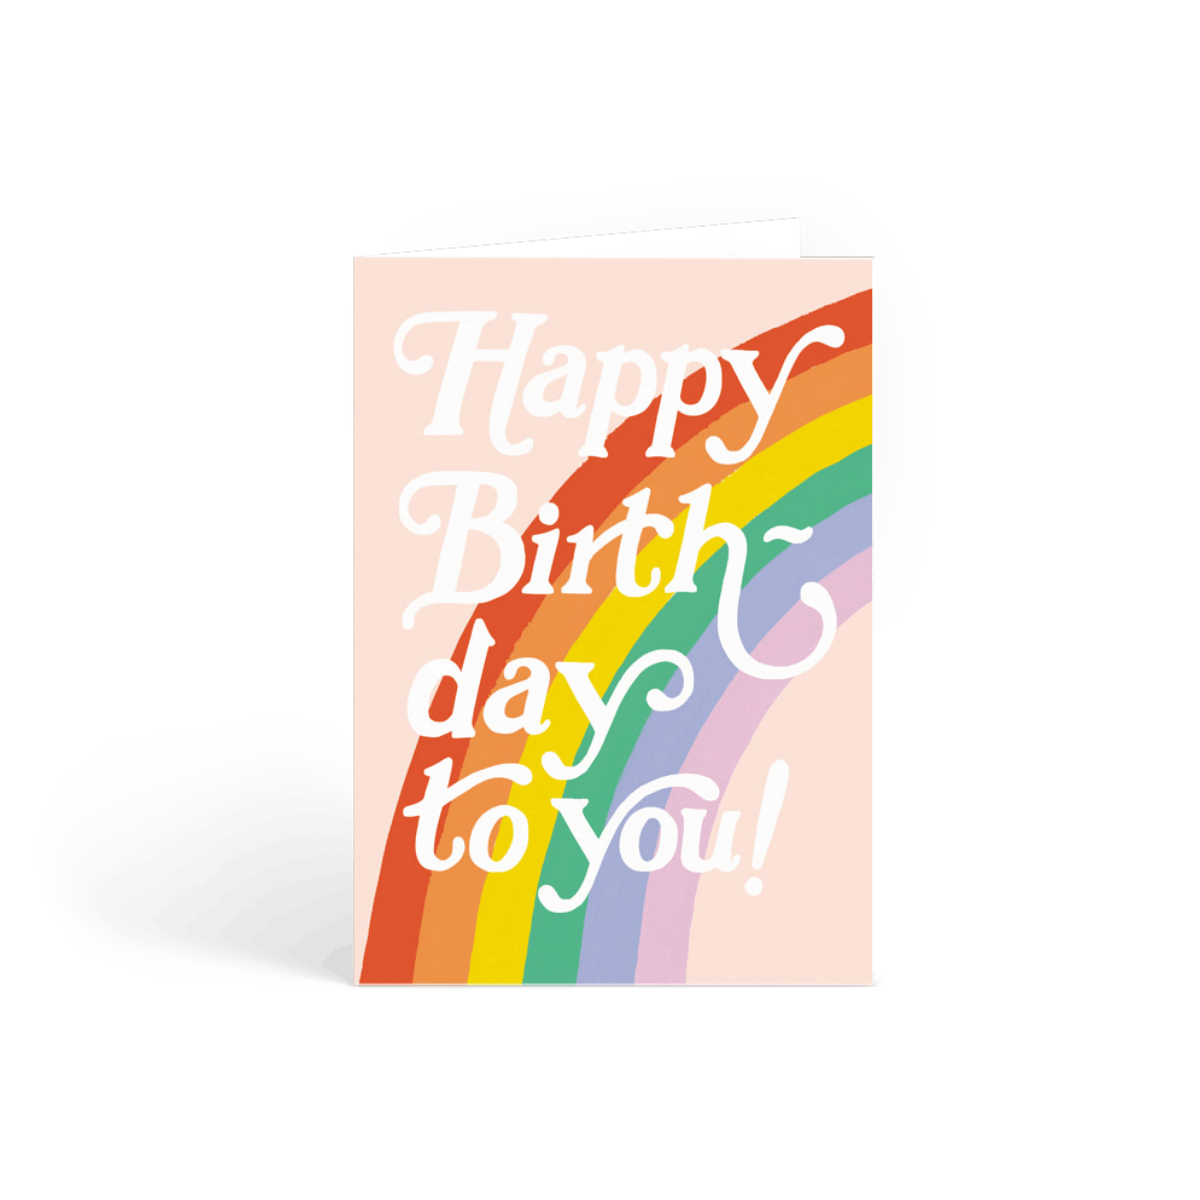 Https%3a%2f%2fwww.papier.com%2fproduct image%2f94955%2f2%2frainbow birthday 23760 front 1572898647.png?ixlib=rb 1.1